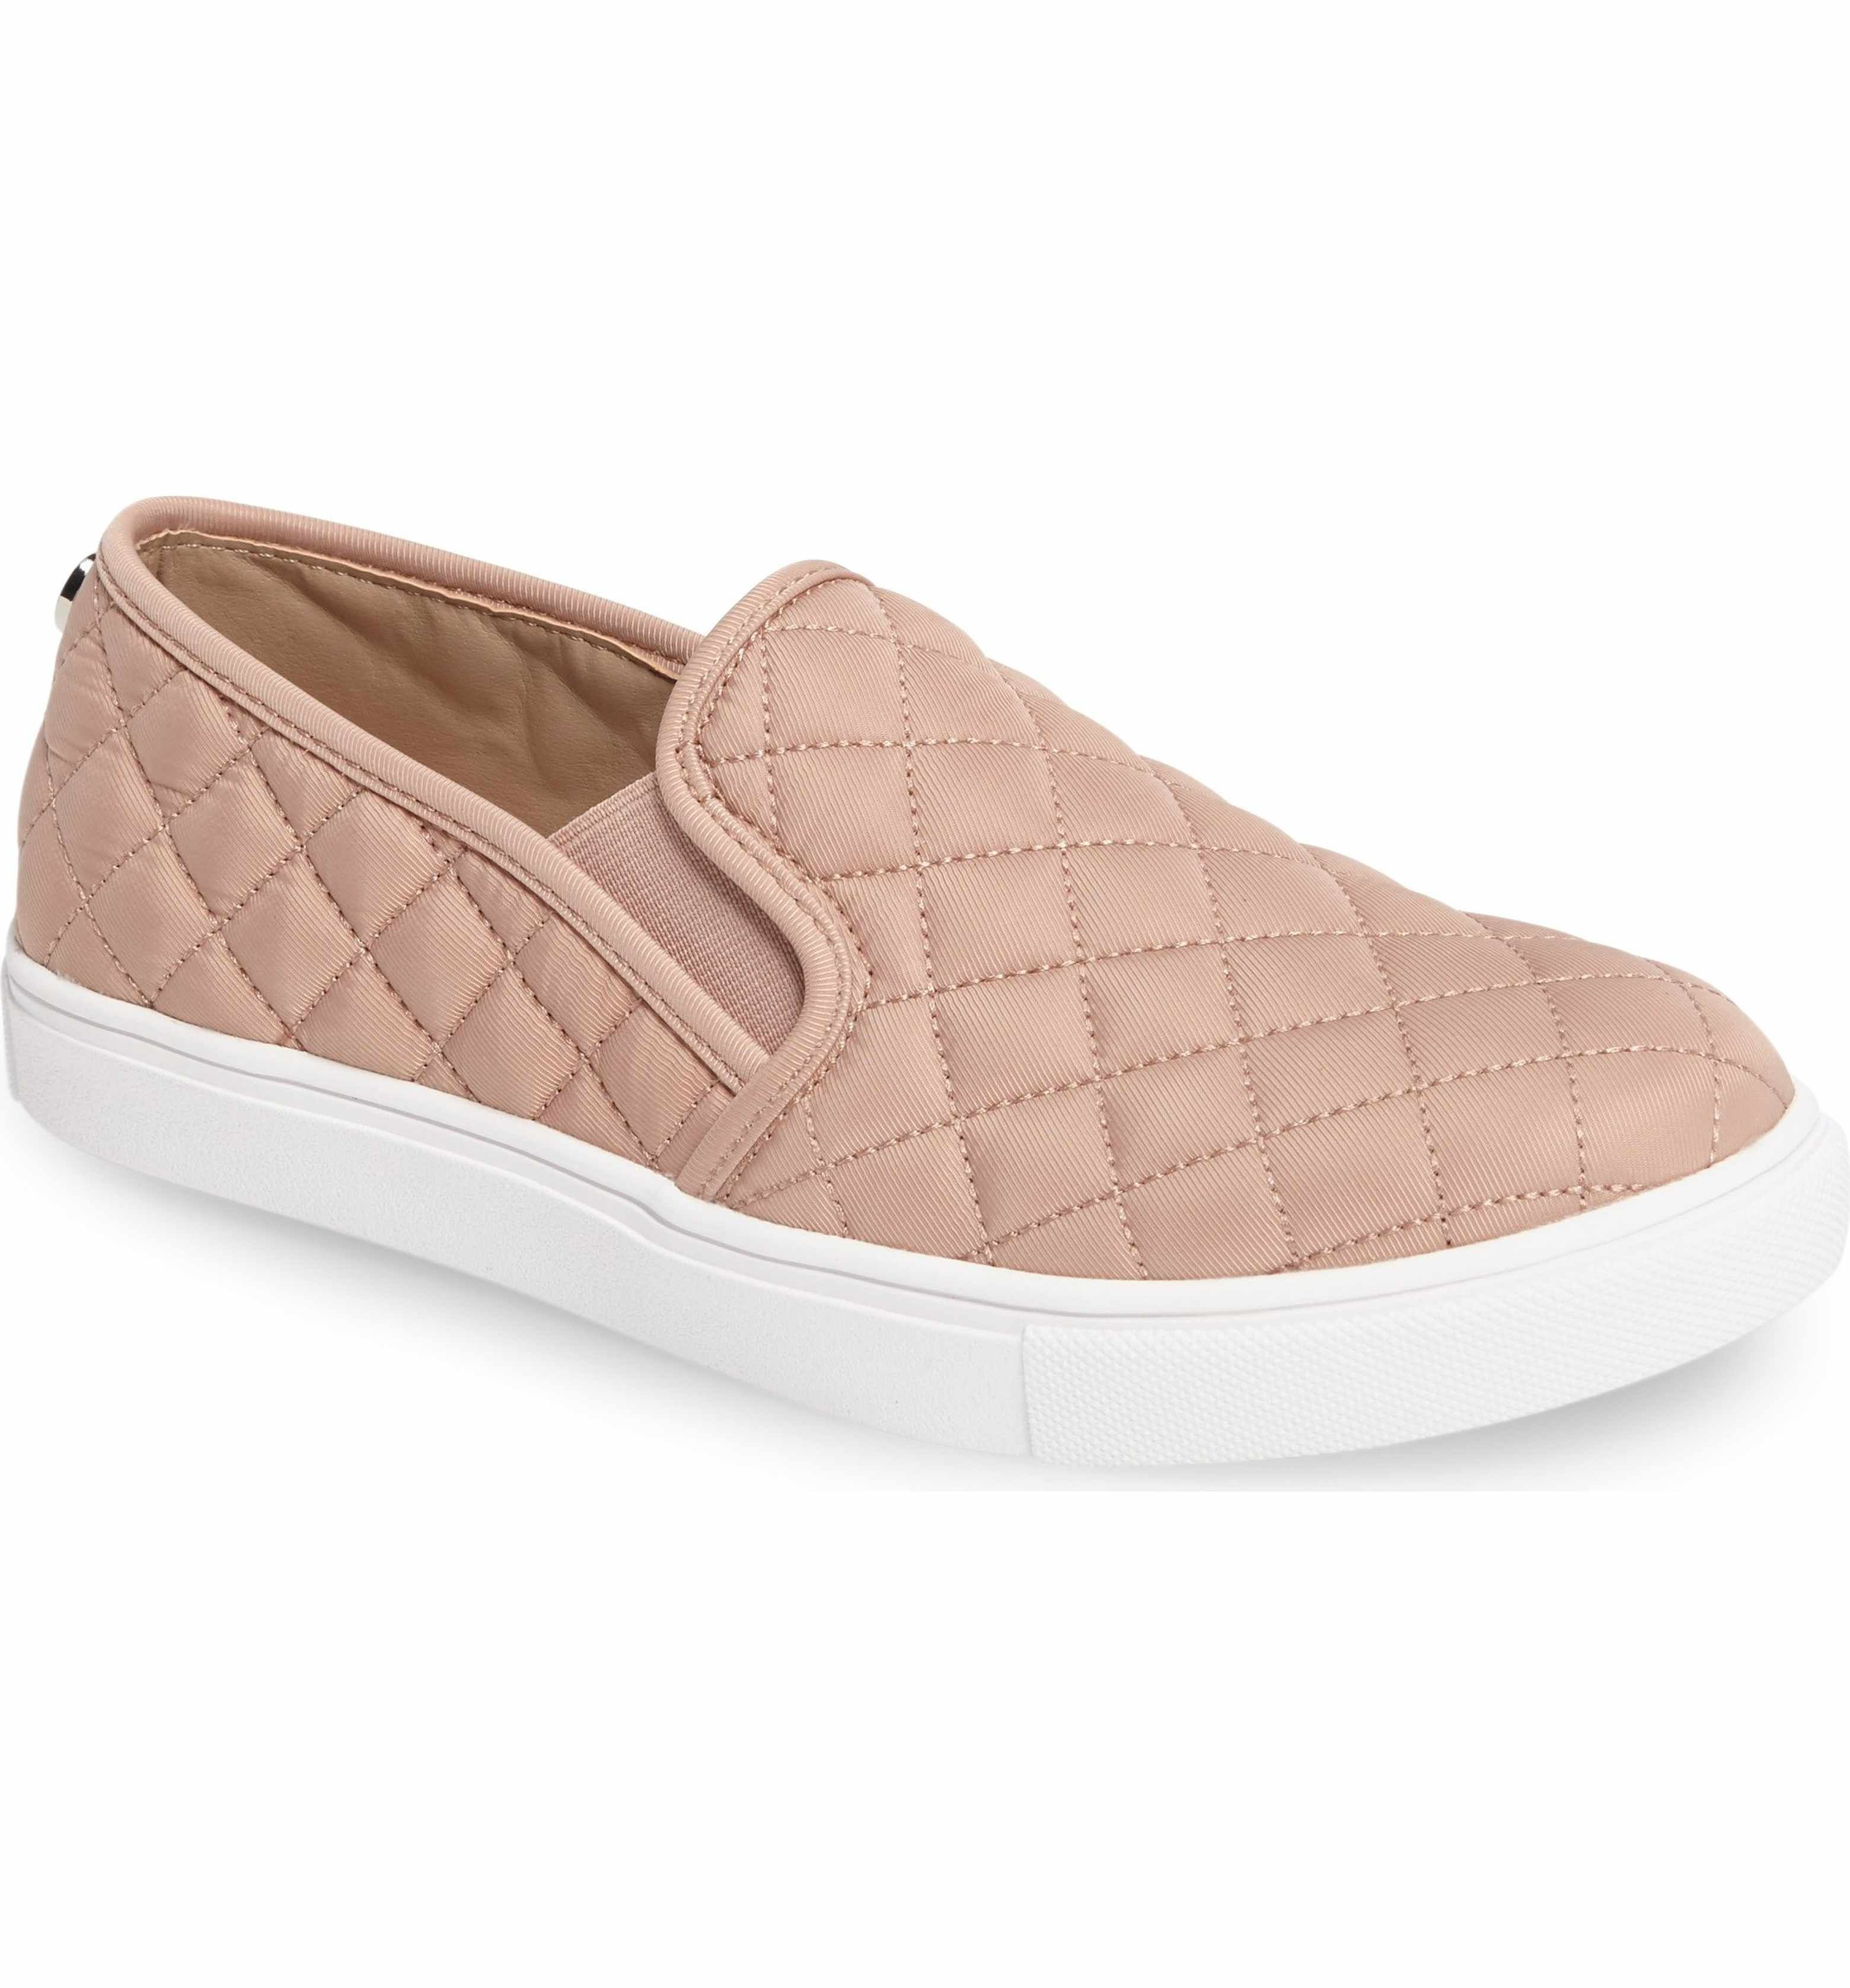 4f1d134dce33e Steve Madden 'Ecntrcqt' Sneaker | Quilted, Slip-on, Blush Pink ...